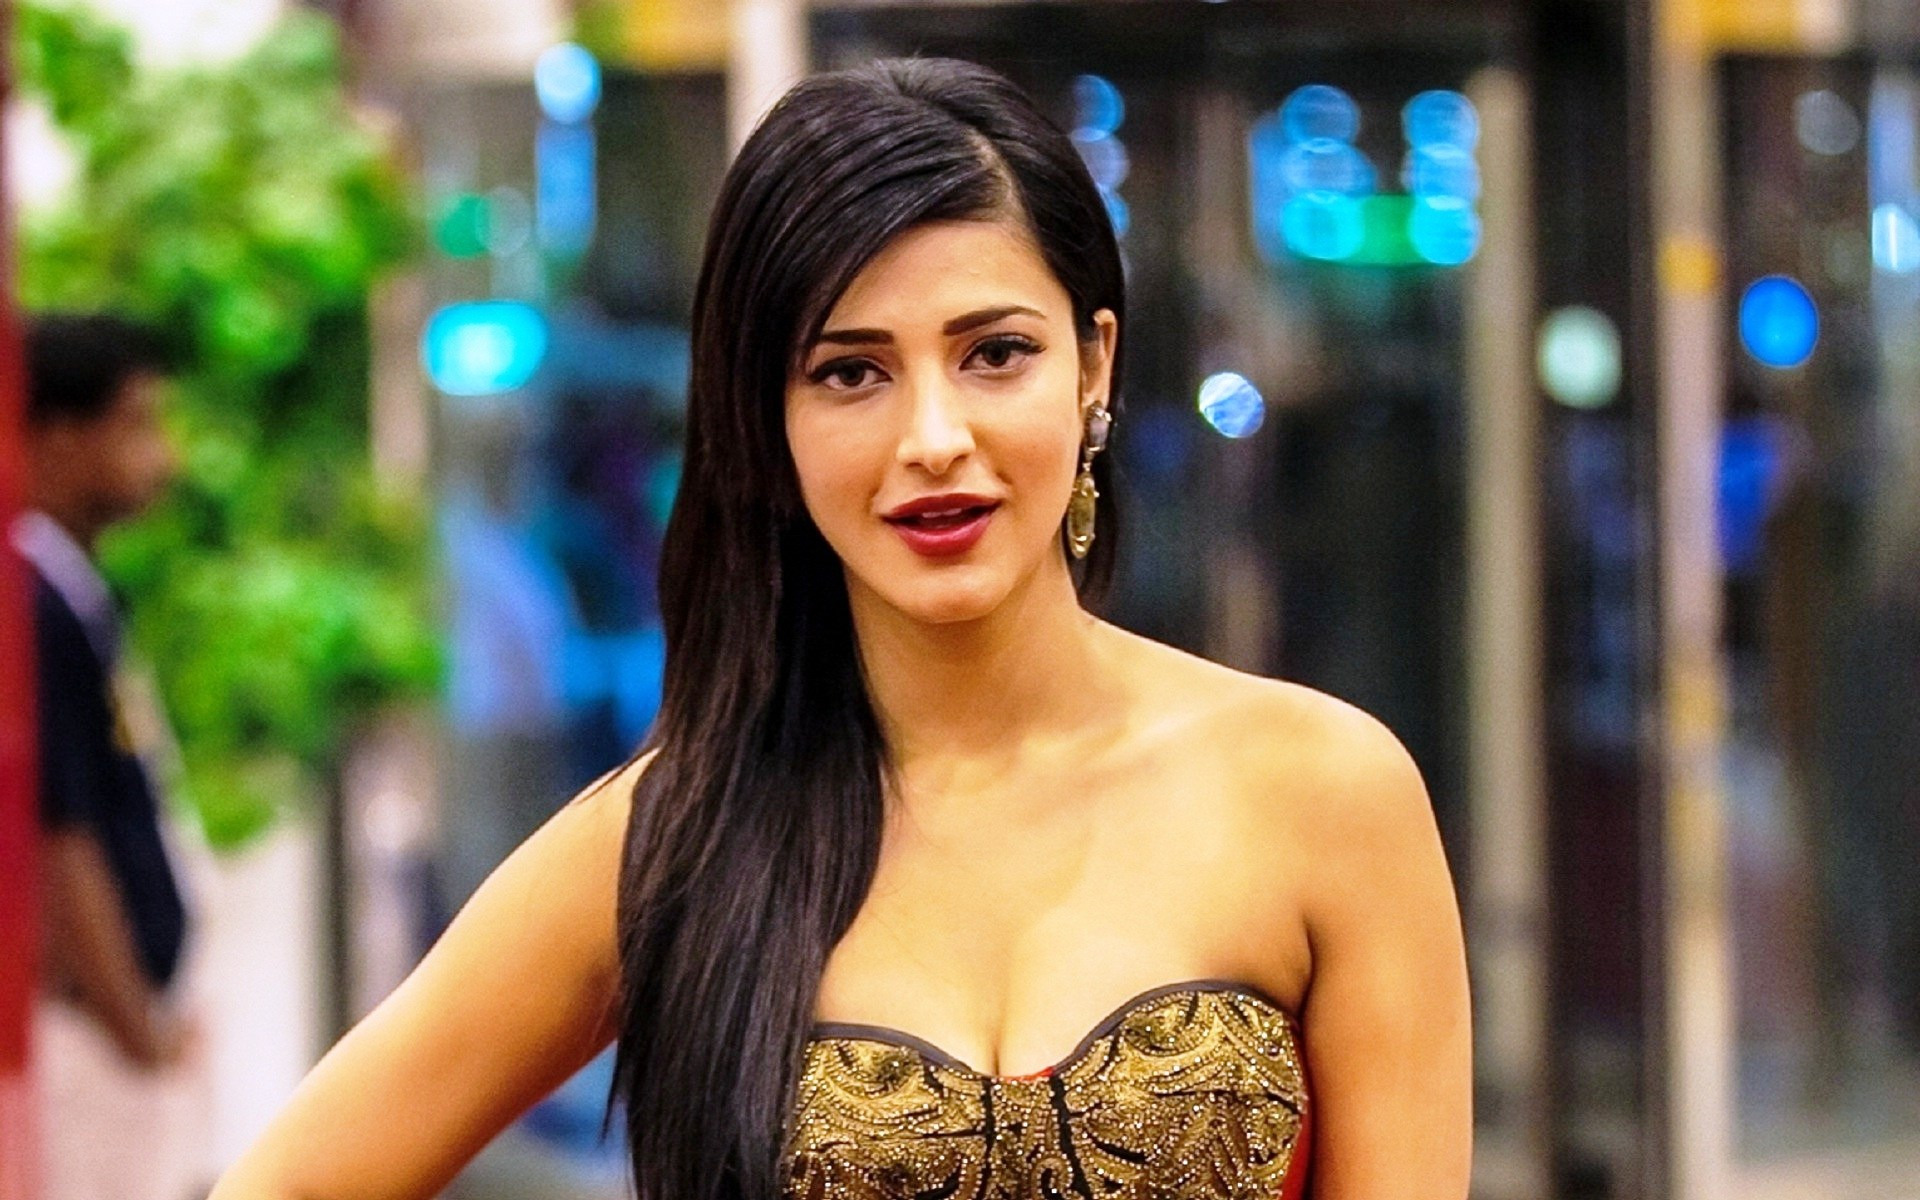 Nepotism Has Been Harder Than Most People For Me, Says Actress Shruti Haasan - Newsx-5542